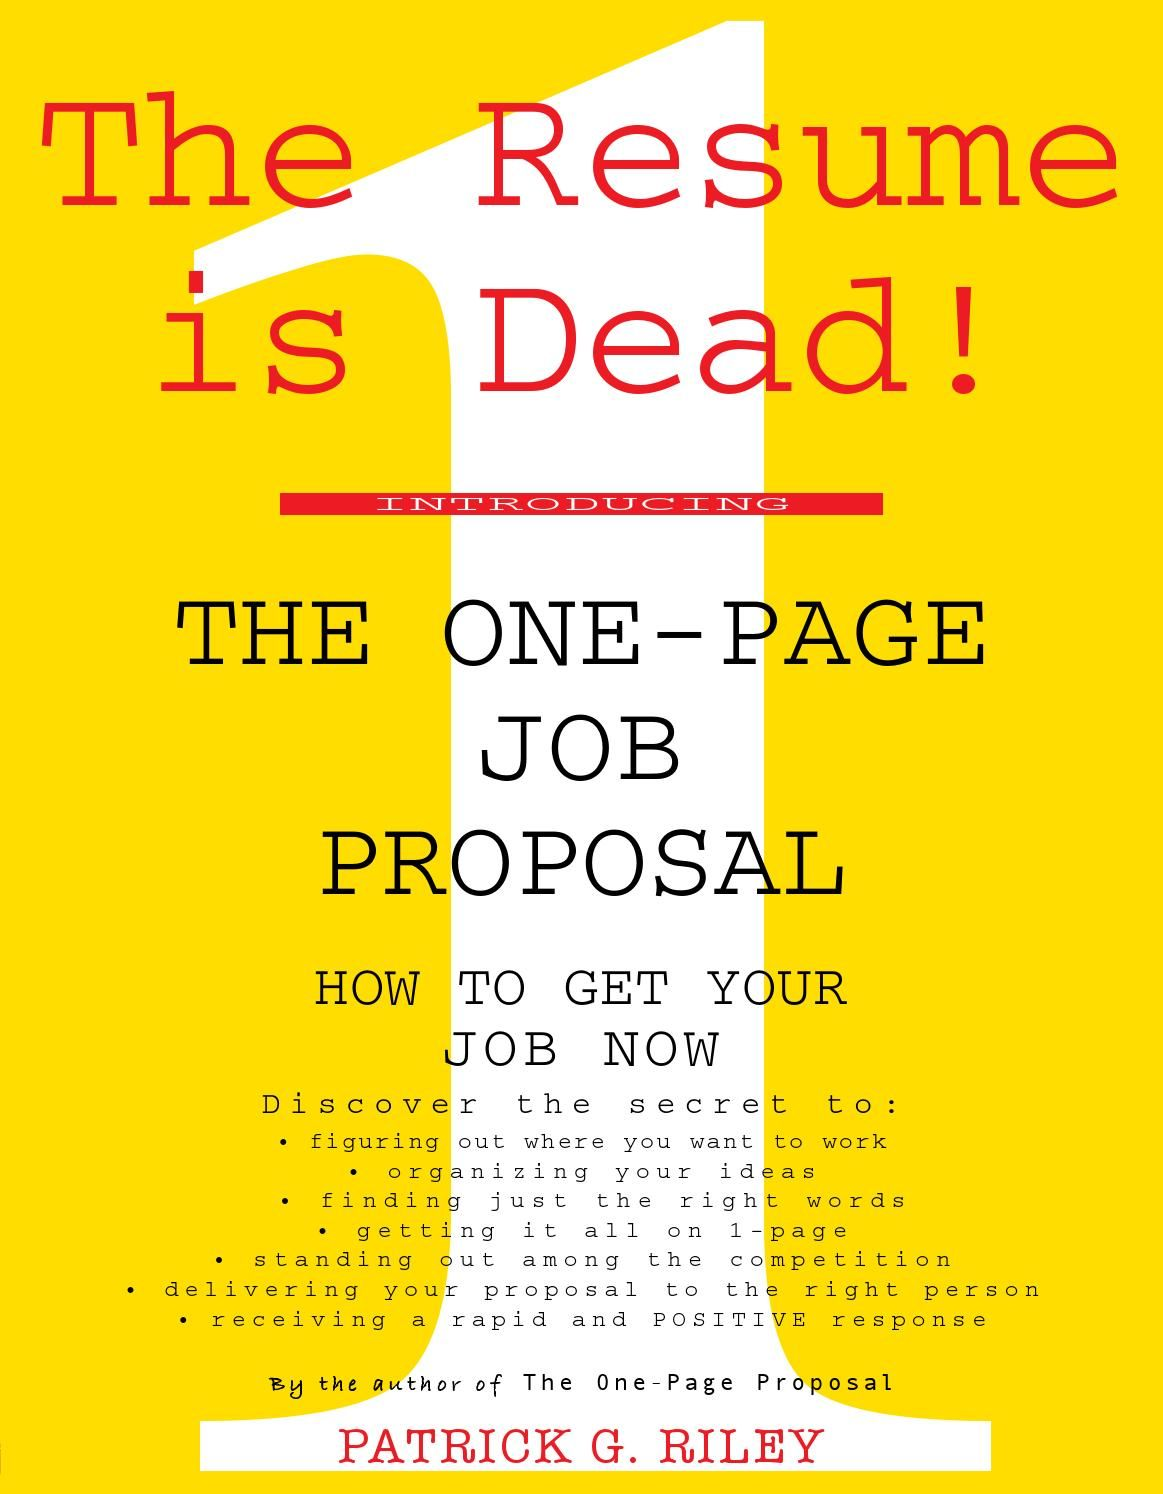 The One Page Job Proposal Job Proposal First Page